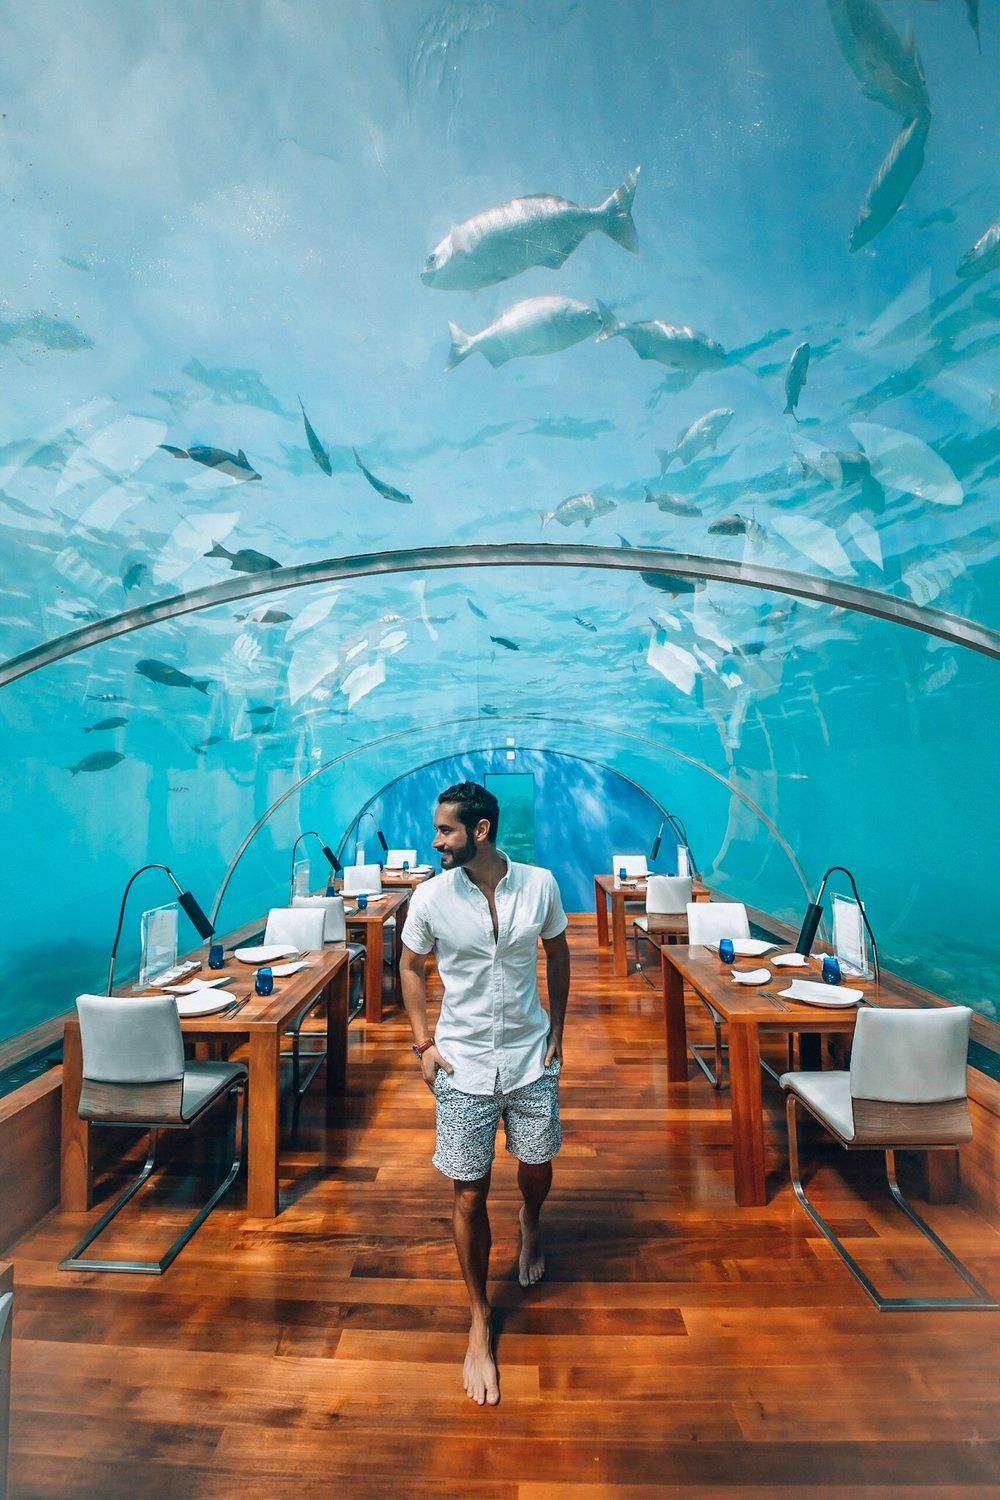 Conrad Maldives is a wonderful destination resort offering many unique experiences- the most famous perhaps being their underwater restaurant! The resort occupies two islands which are connected by a bridge. One is larger ideal for families, and the smaller one is perfect for couples and those who want more privacy.